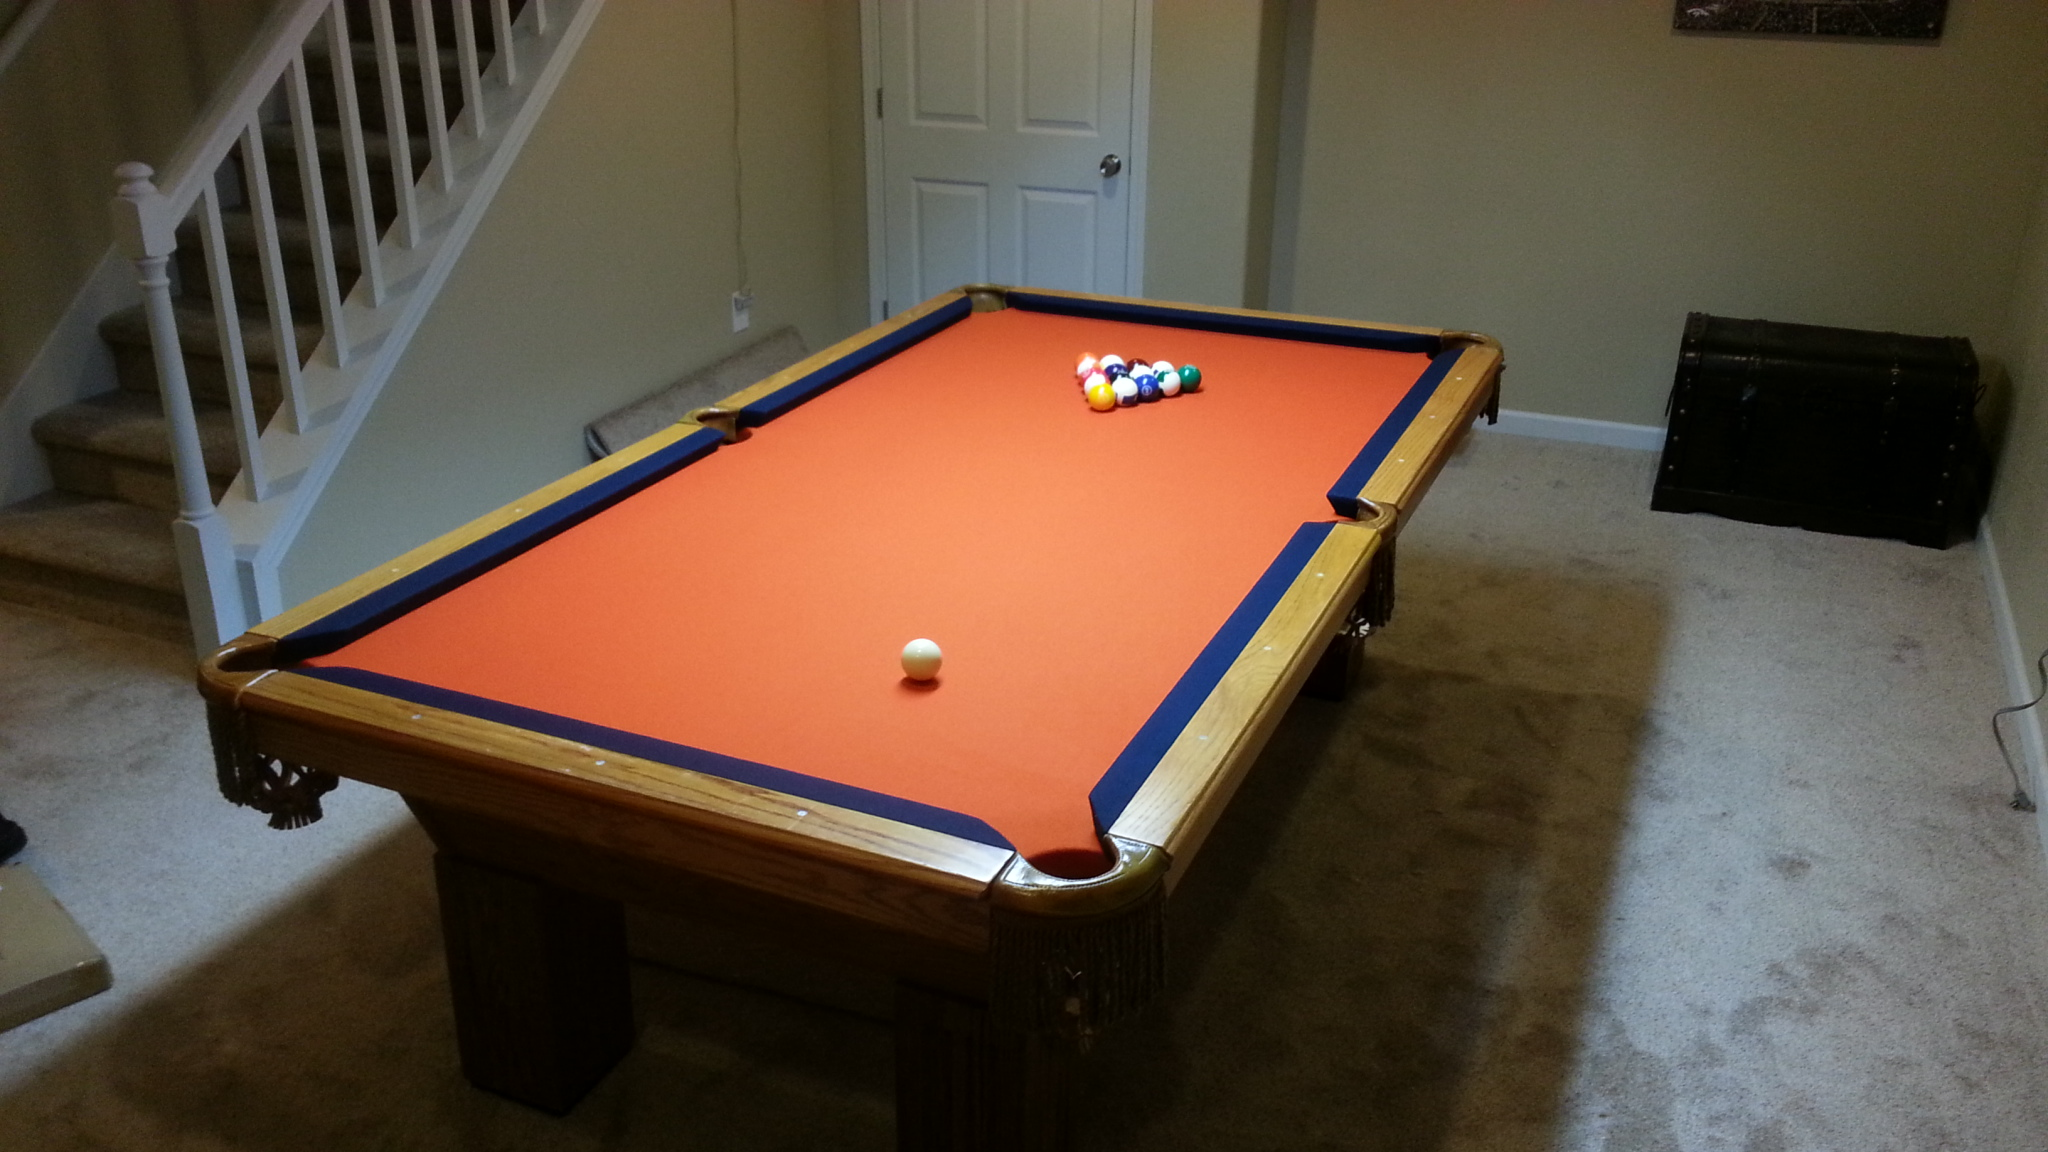 over new il refelt sell sold pool mover pooltablemover table on billiard crating time chicago buy pools recushion install best images used illinois tables